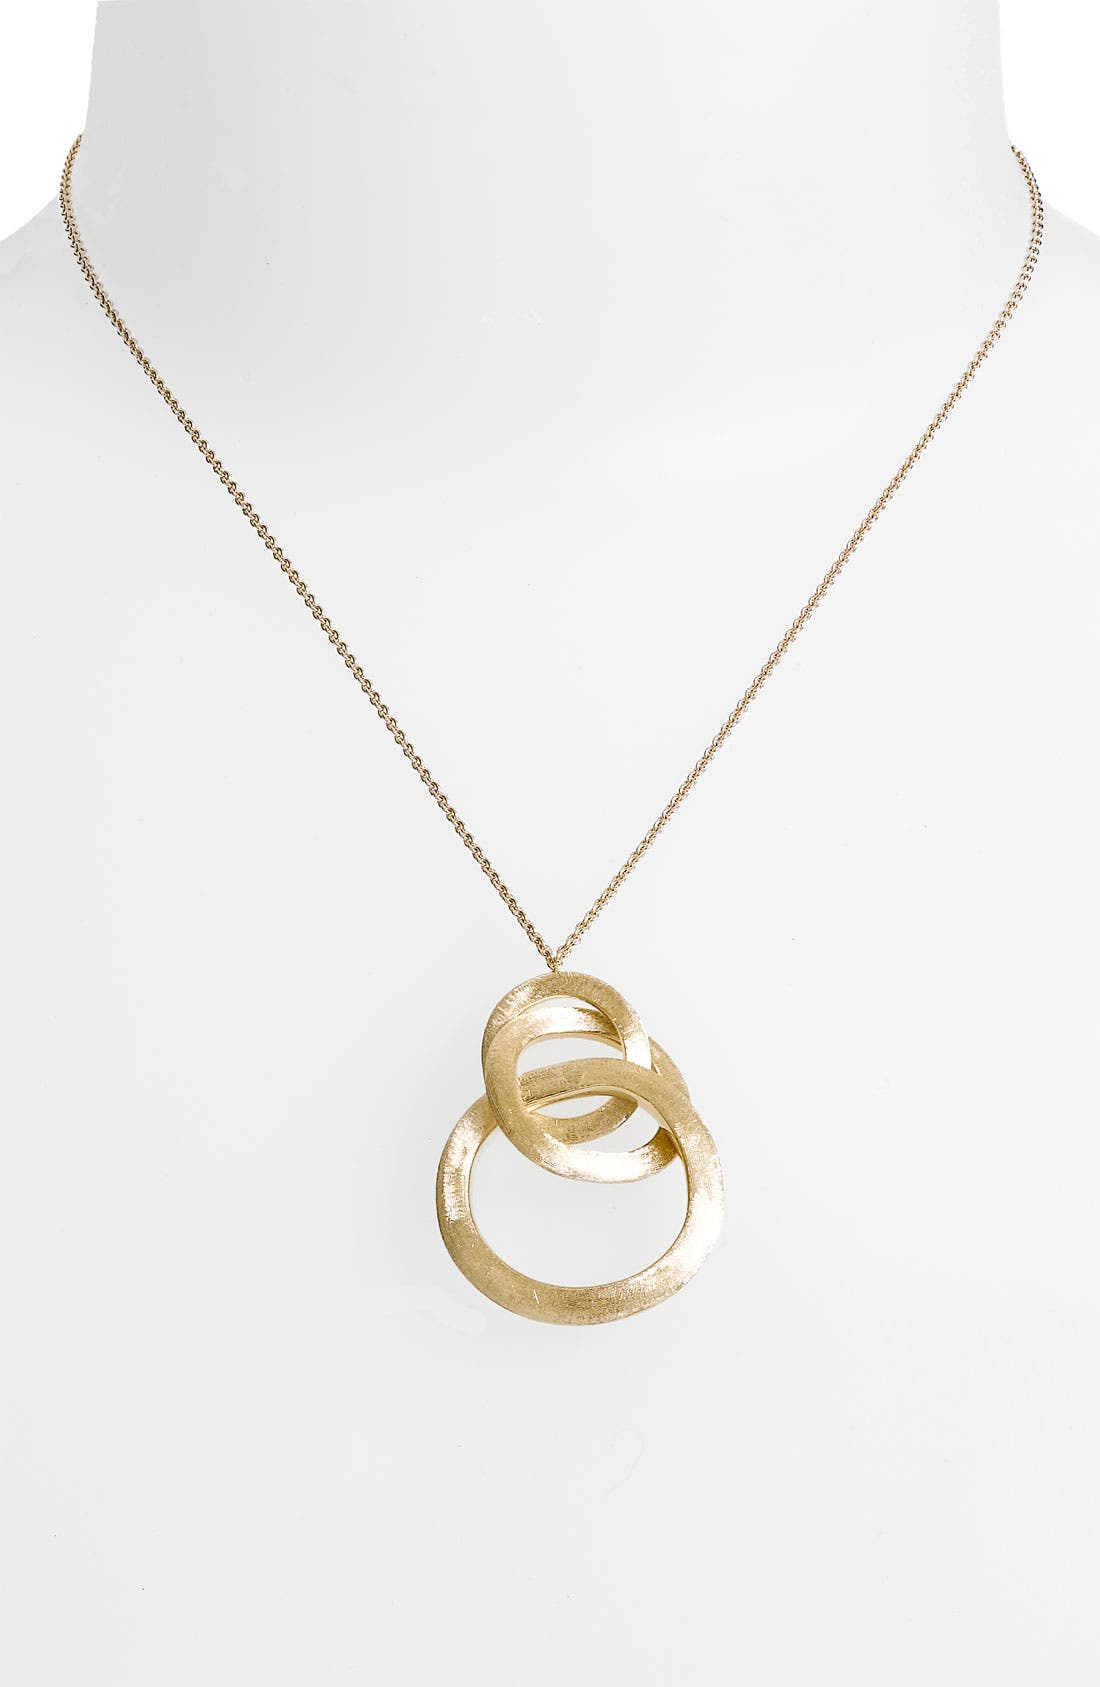 Main Image - Marco Bicego Link Pendant Necklace